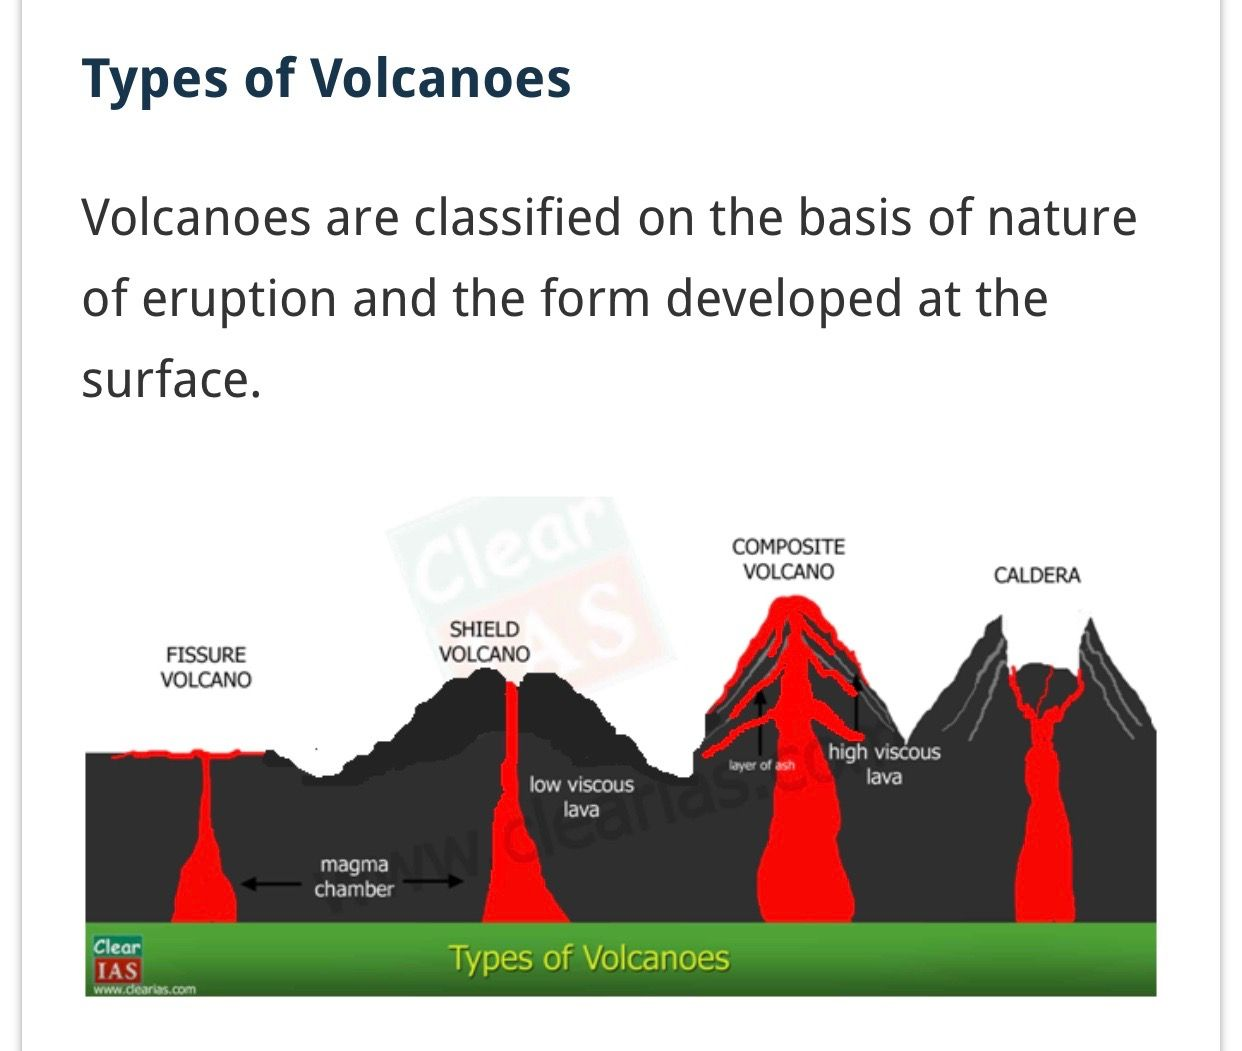 Types Of Volcanoes Hawaii Has Shield Volcanos Which